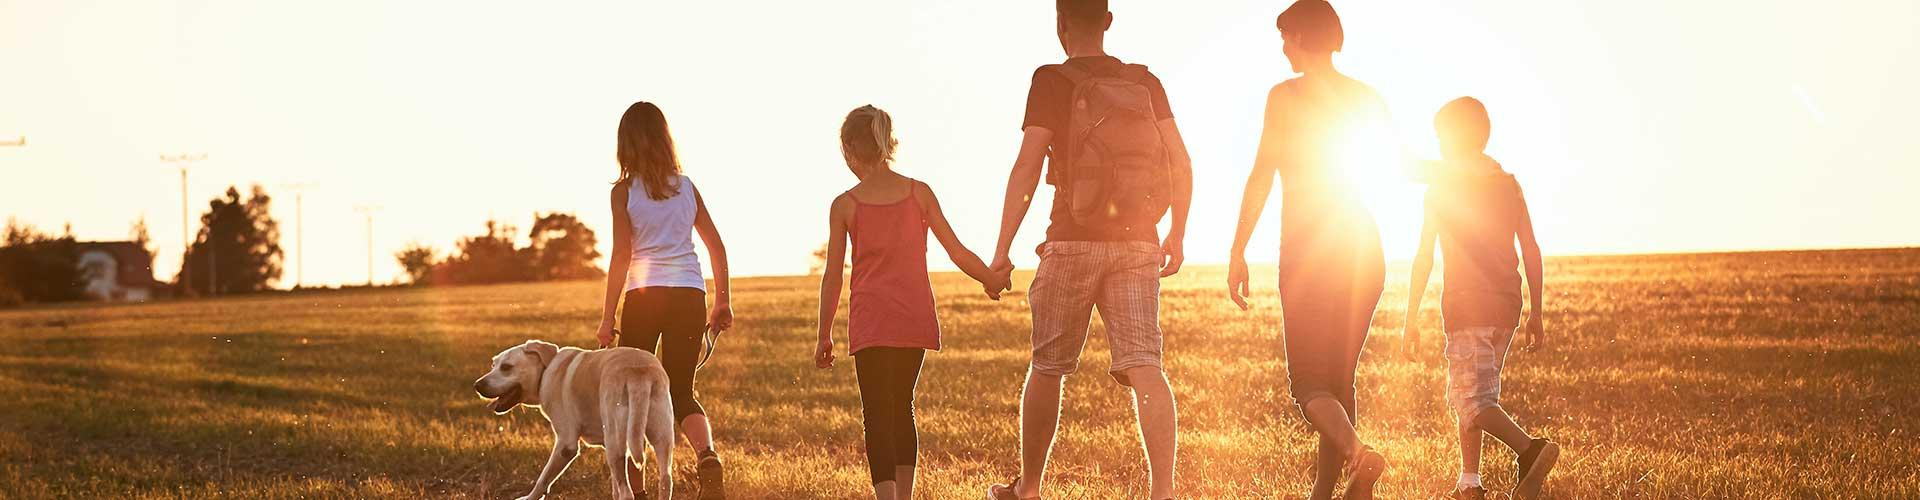 Family walks in field at sunset